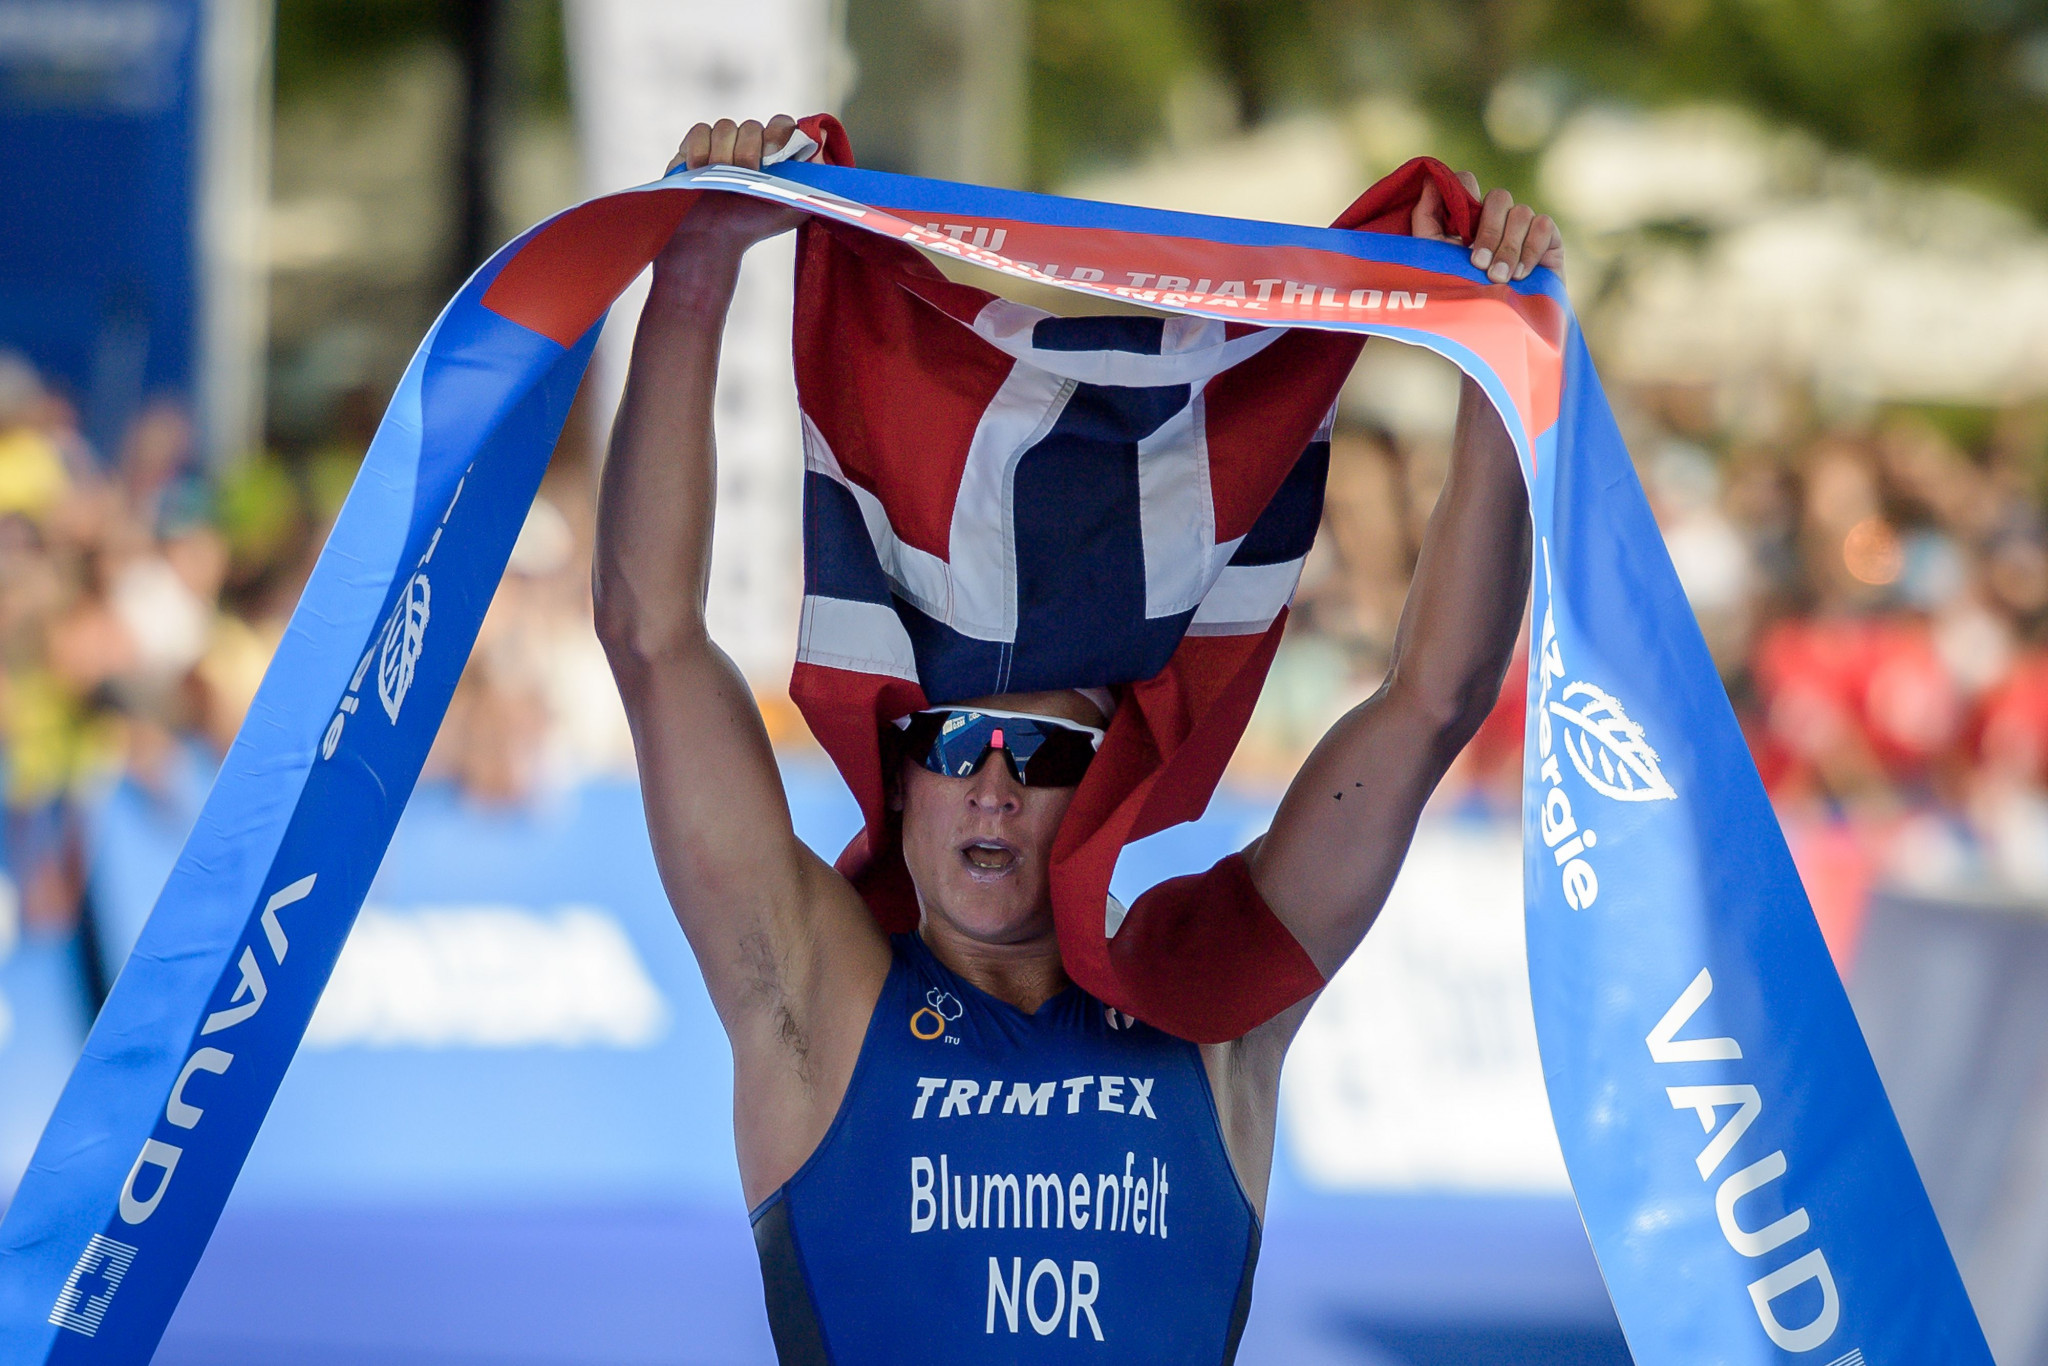 In-form Blummenfelt powers to victory at World Triathlon Cup in Lisbon